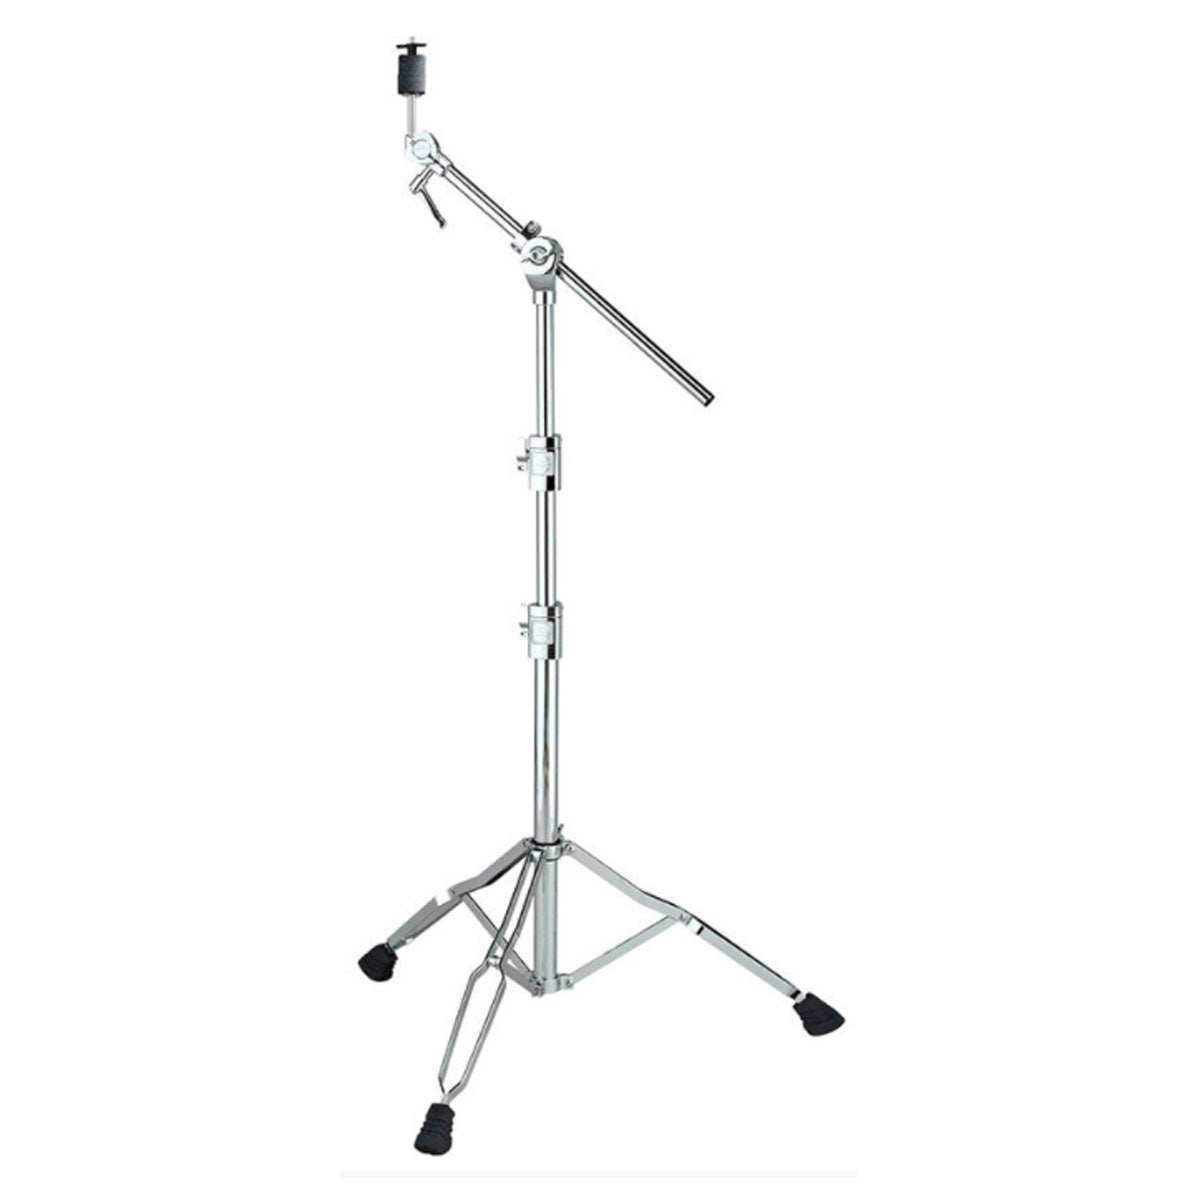 Dixon K Series Boom Cymbal Stand Heavy-Weight Double Braced - PSYK900IKS